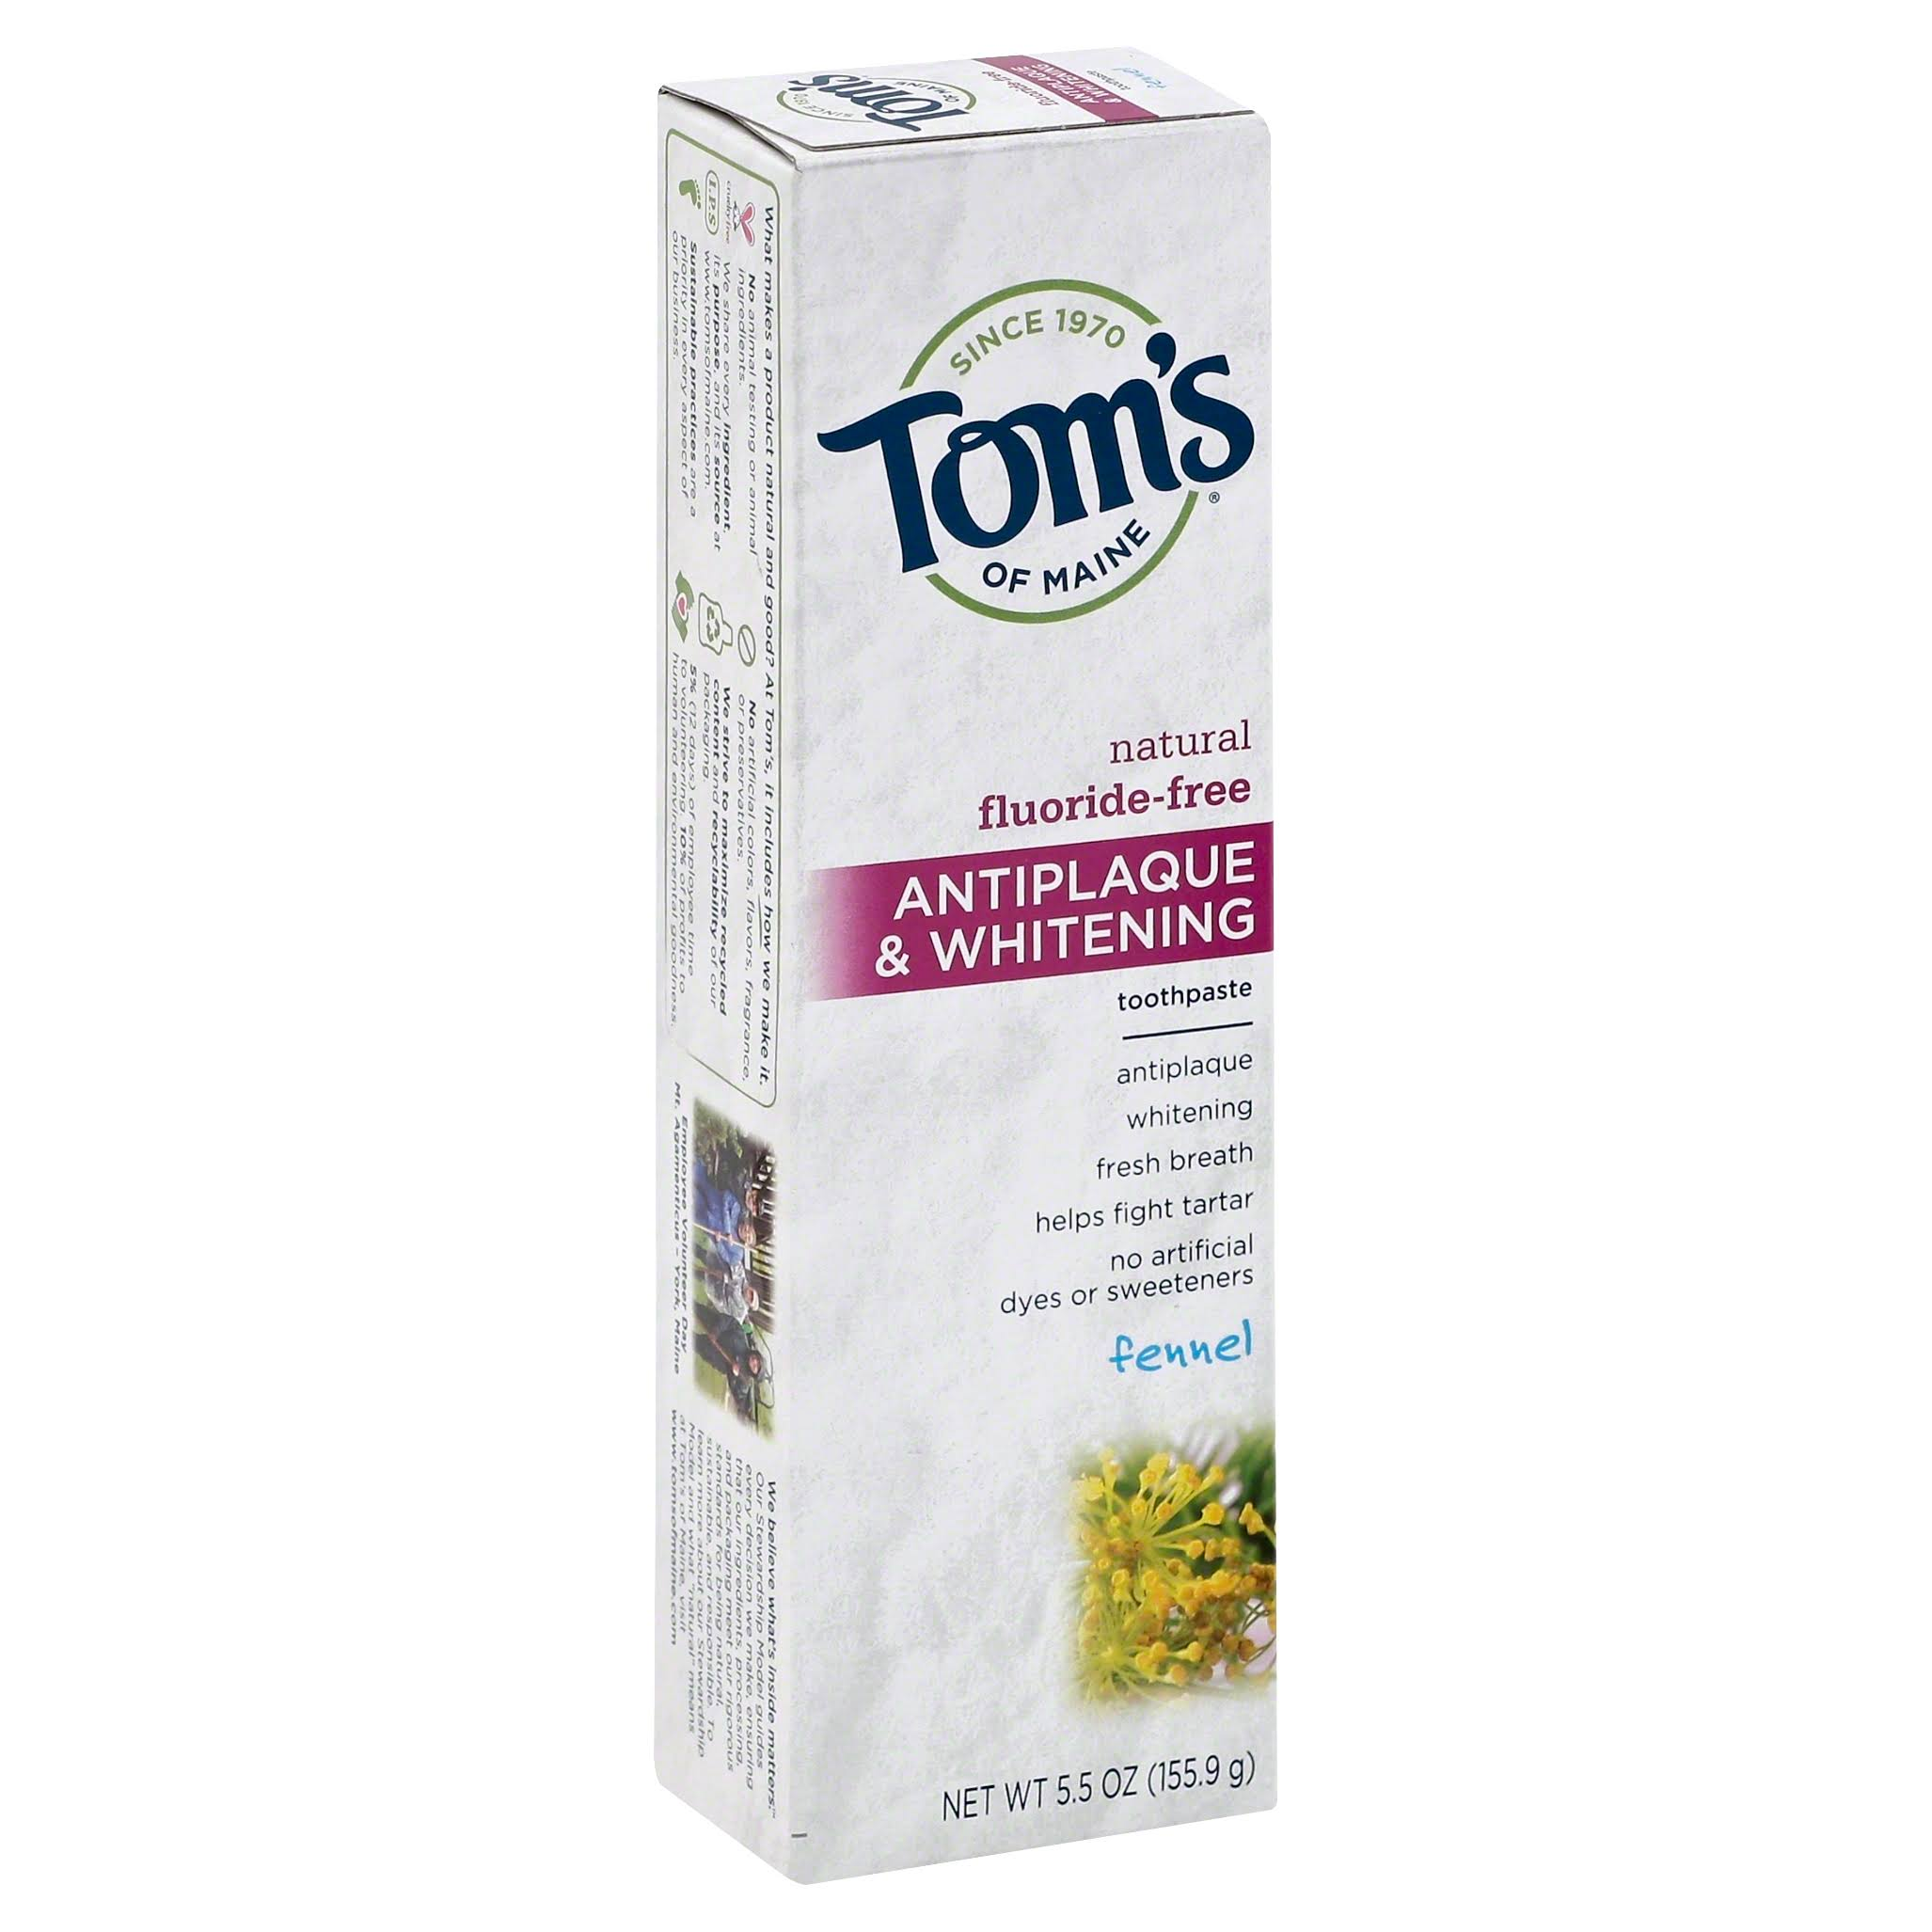 Tom's of Maine Natural Antiplaque and Whitening Toothpaste - Peppermint, 5.5oz